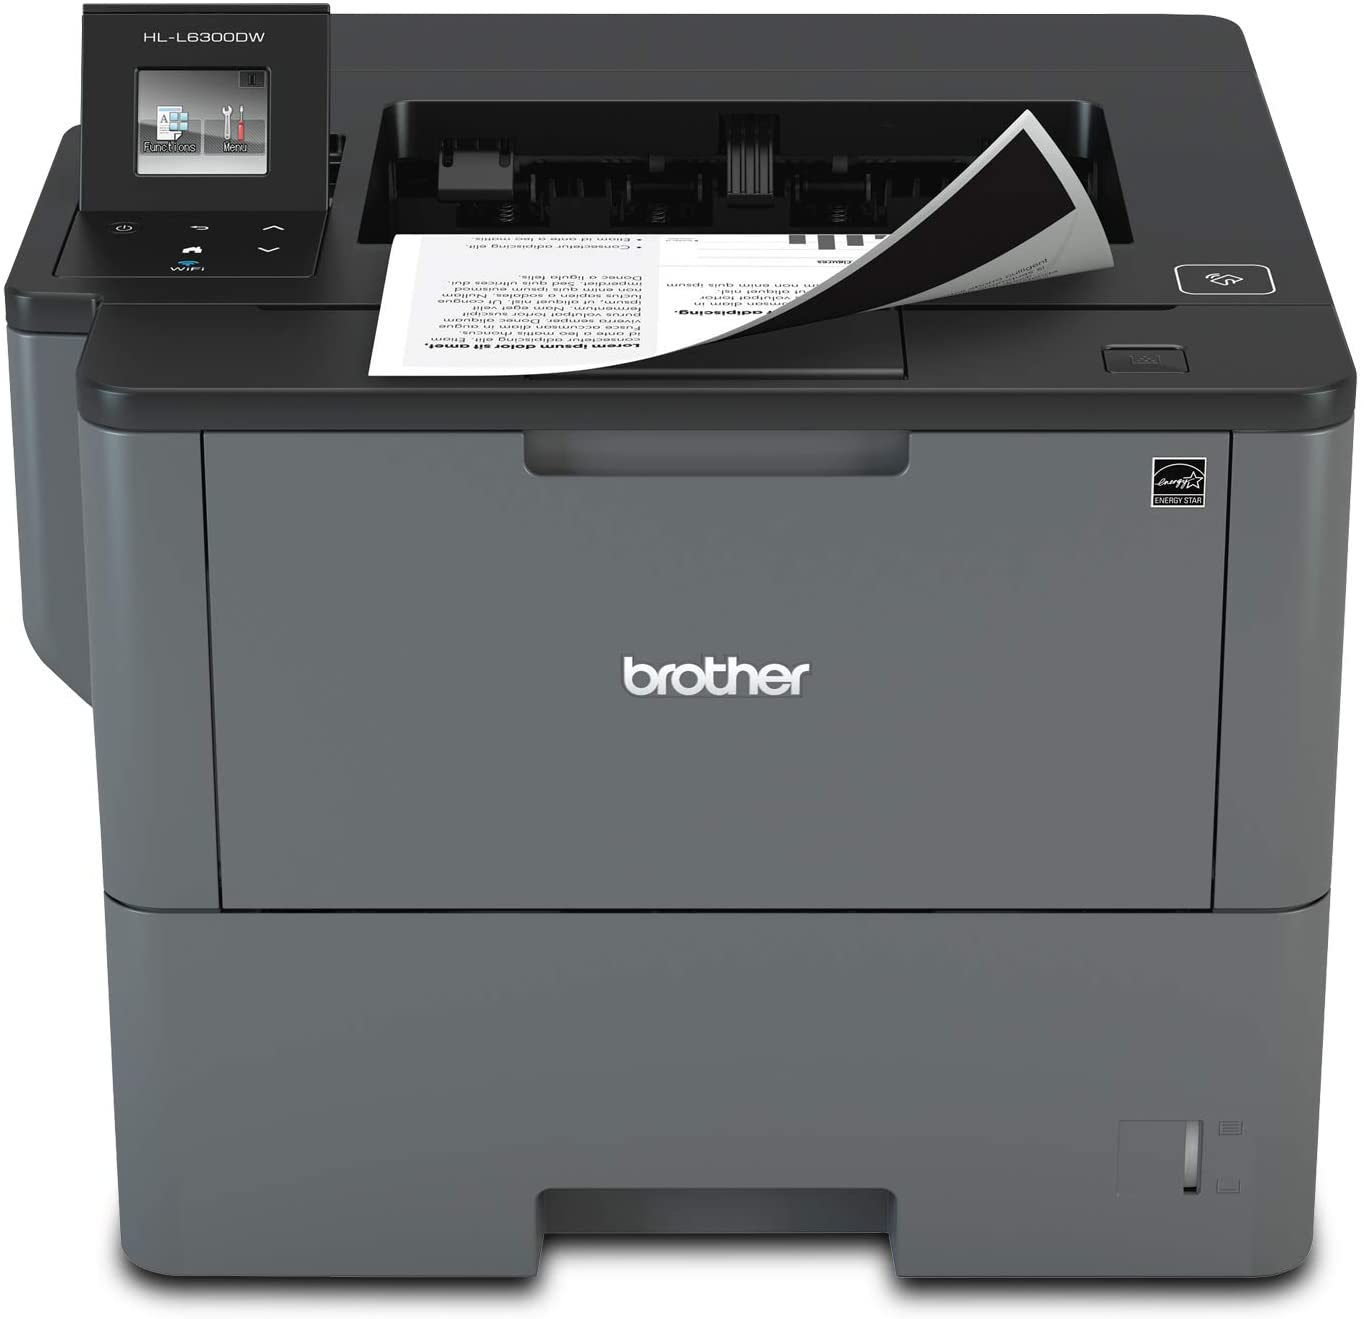 Brother Monochrome Laser Printer, HL-L6300DW, Wireless Networking, Mobile Printing, Duplex Printing, Large Paper Capacity, Cloud Printing, Amazon Dash Replenishment Ready